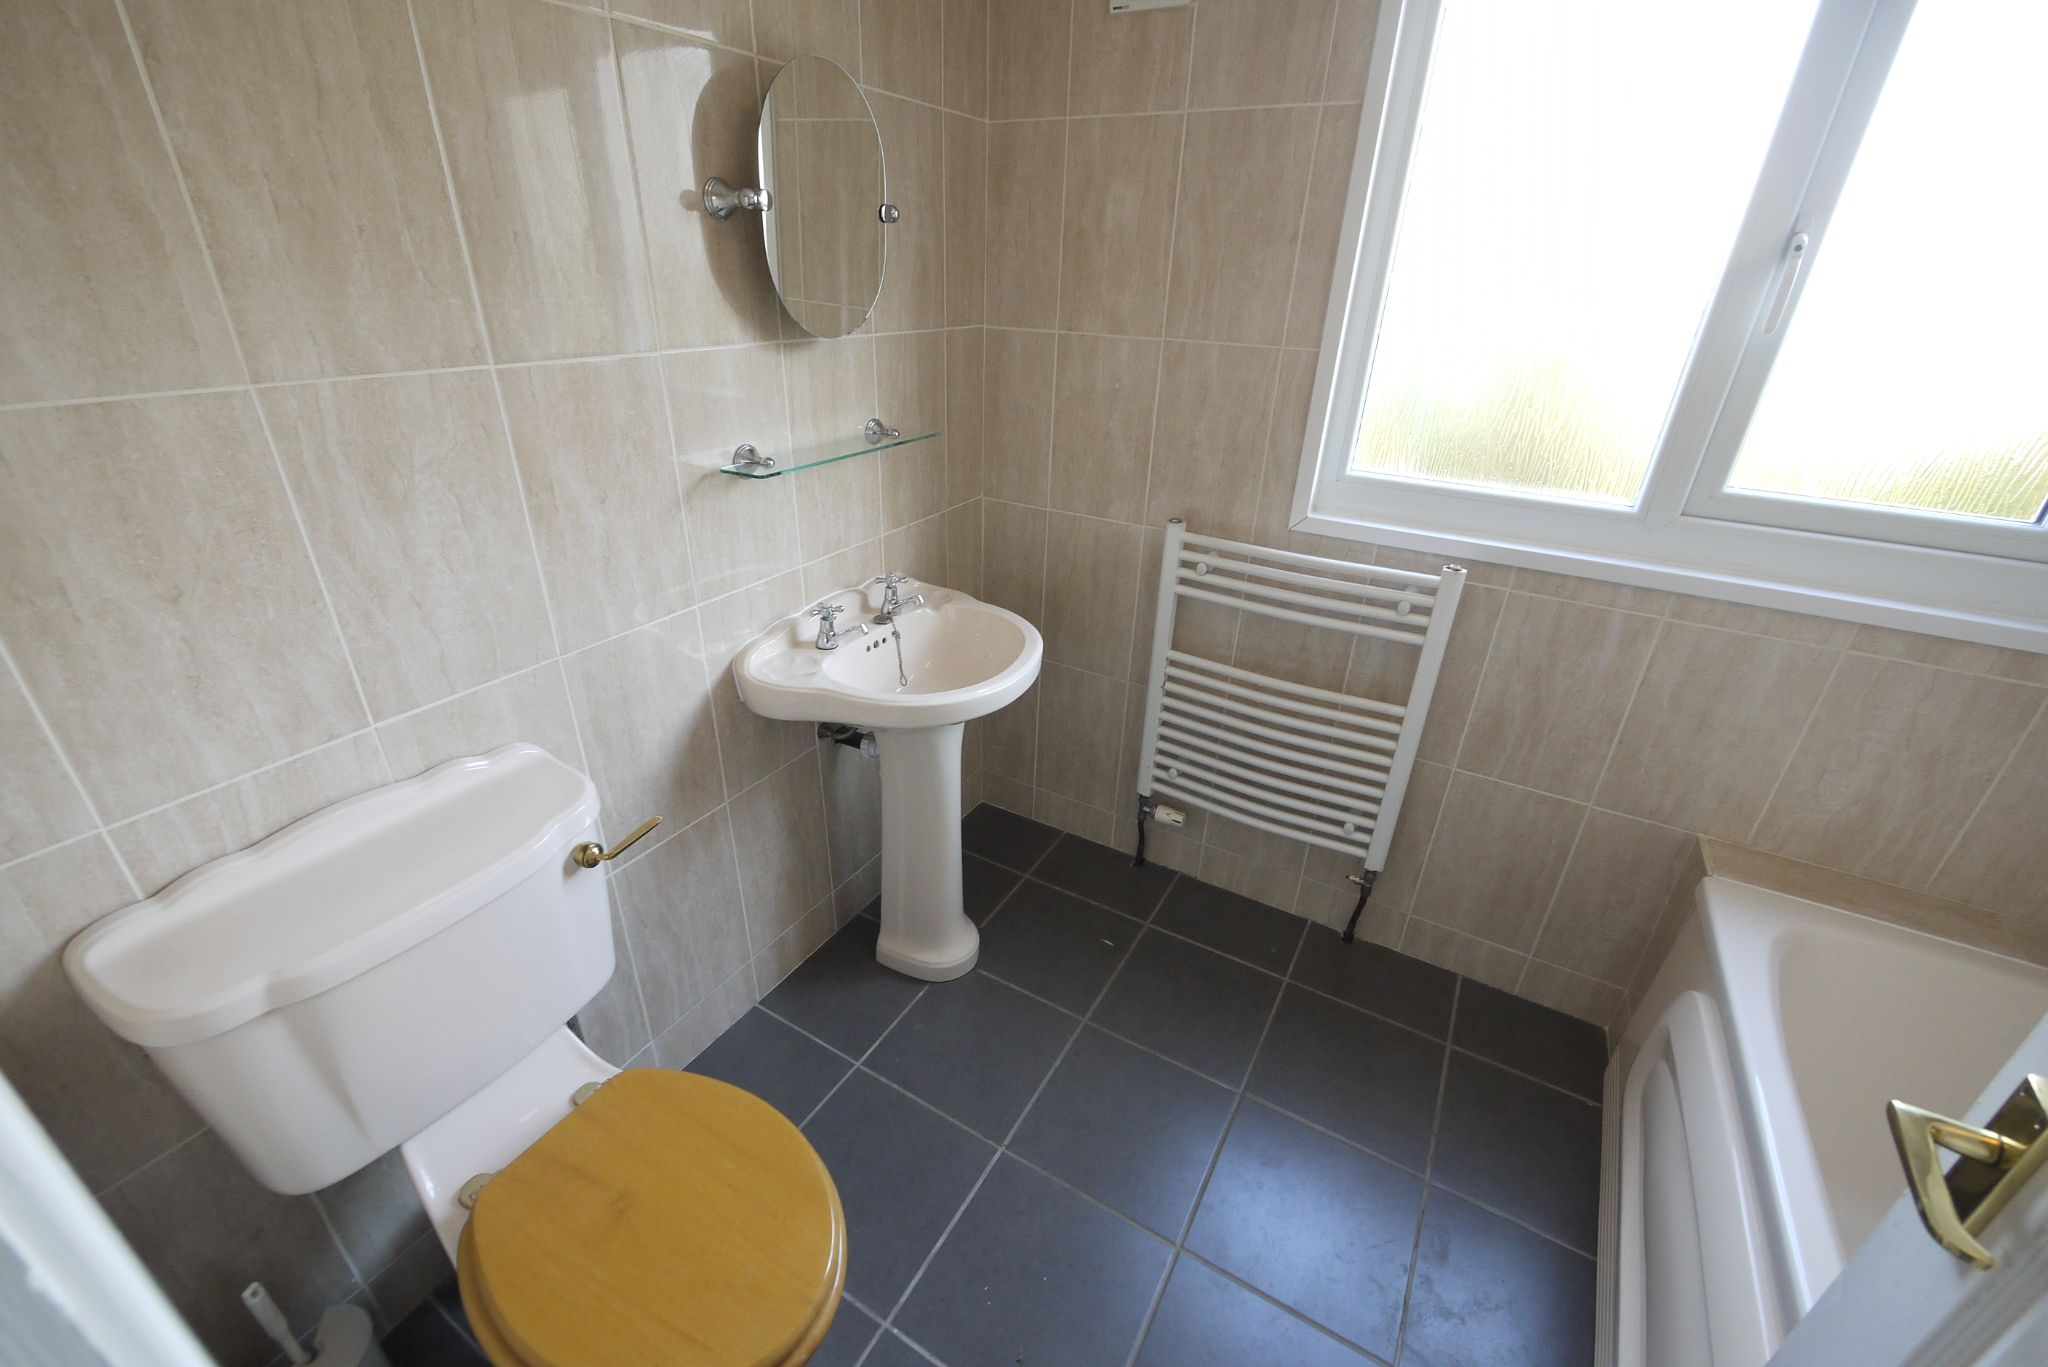 3 bedroom detached house SSTC in Brighouse - Photograph 13.